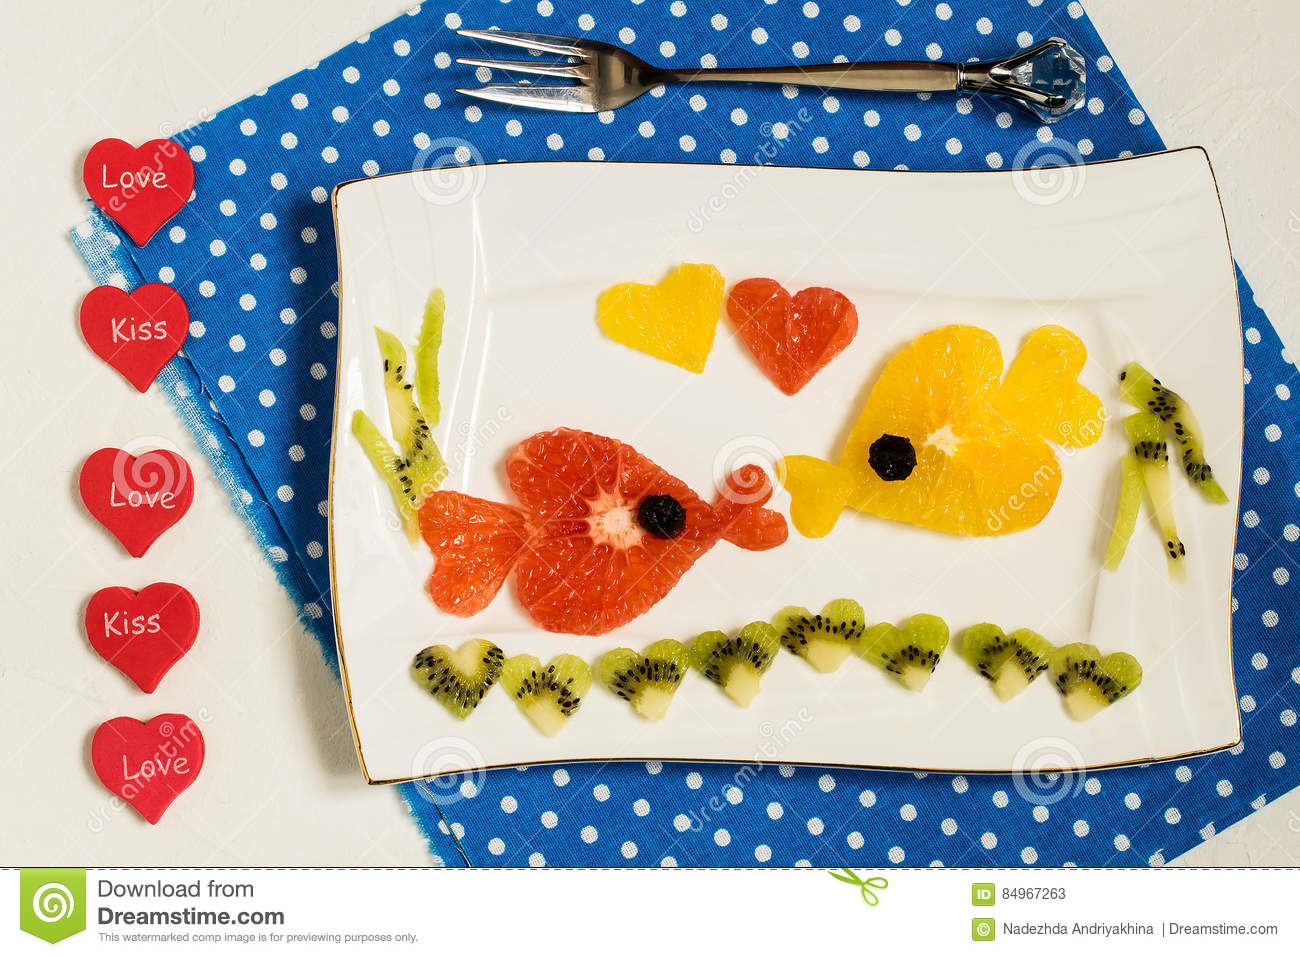 Creative Design Of Fruit Salad For Valentines Day Stock Image